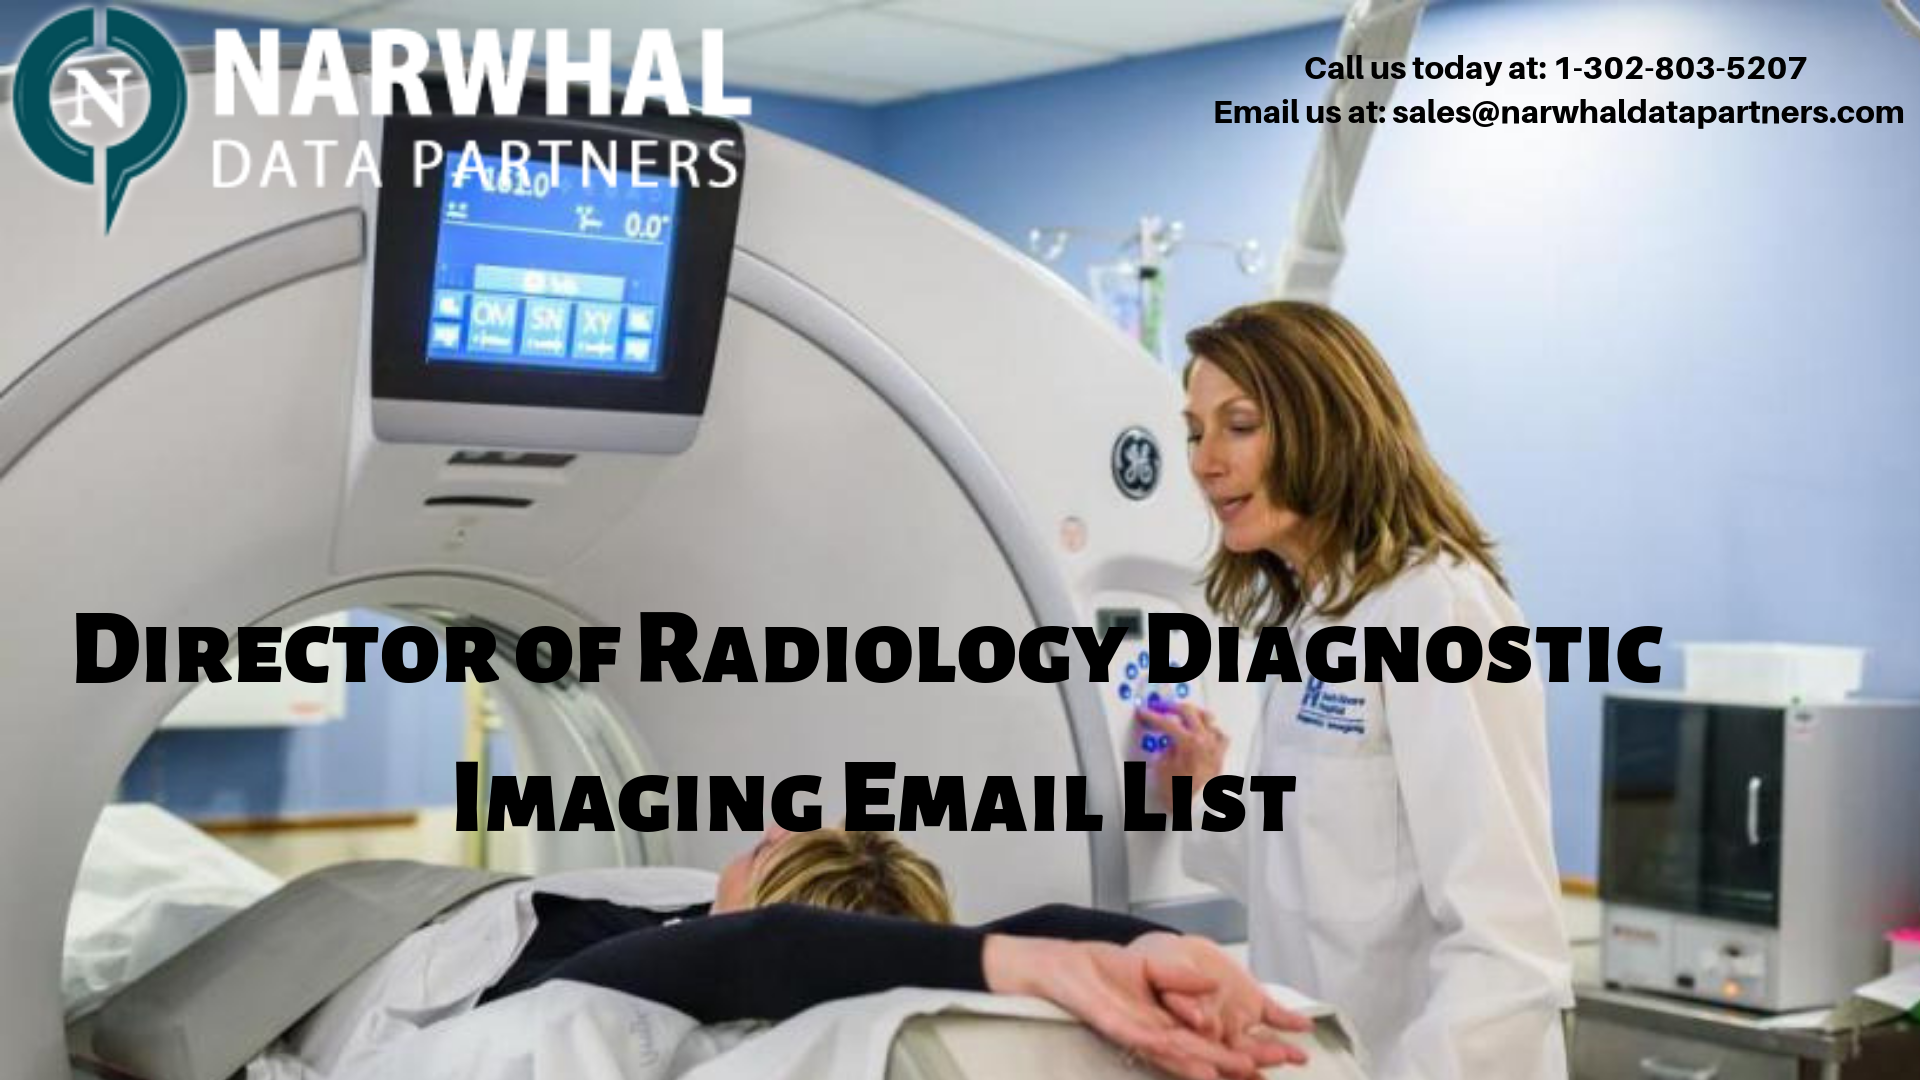 http://narwhaldatapartners.com/director-of-radiology-diagnostic-imaging-email-list.html